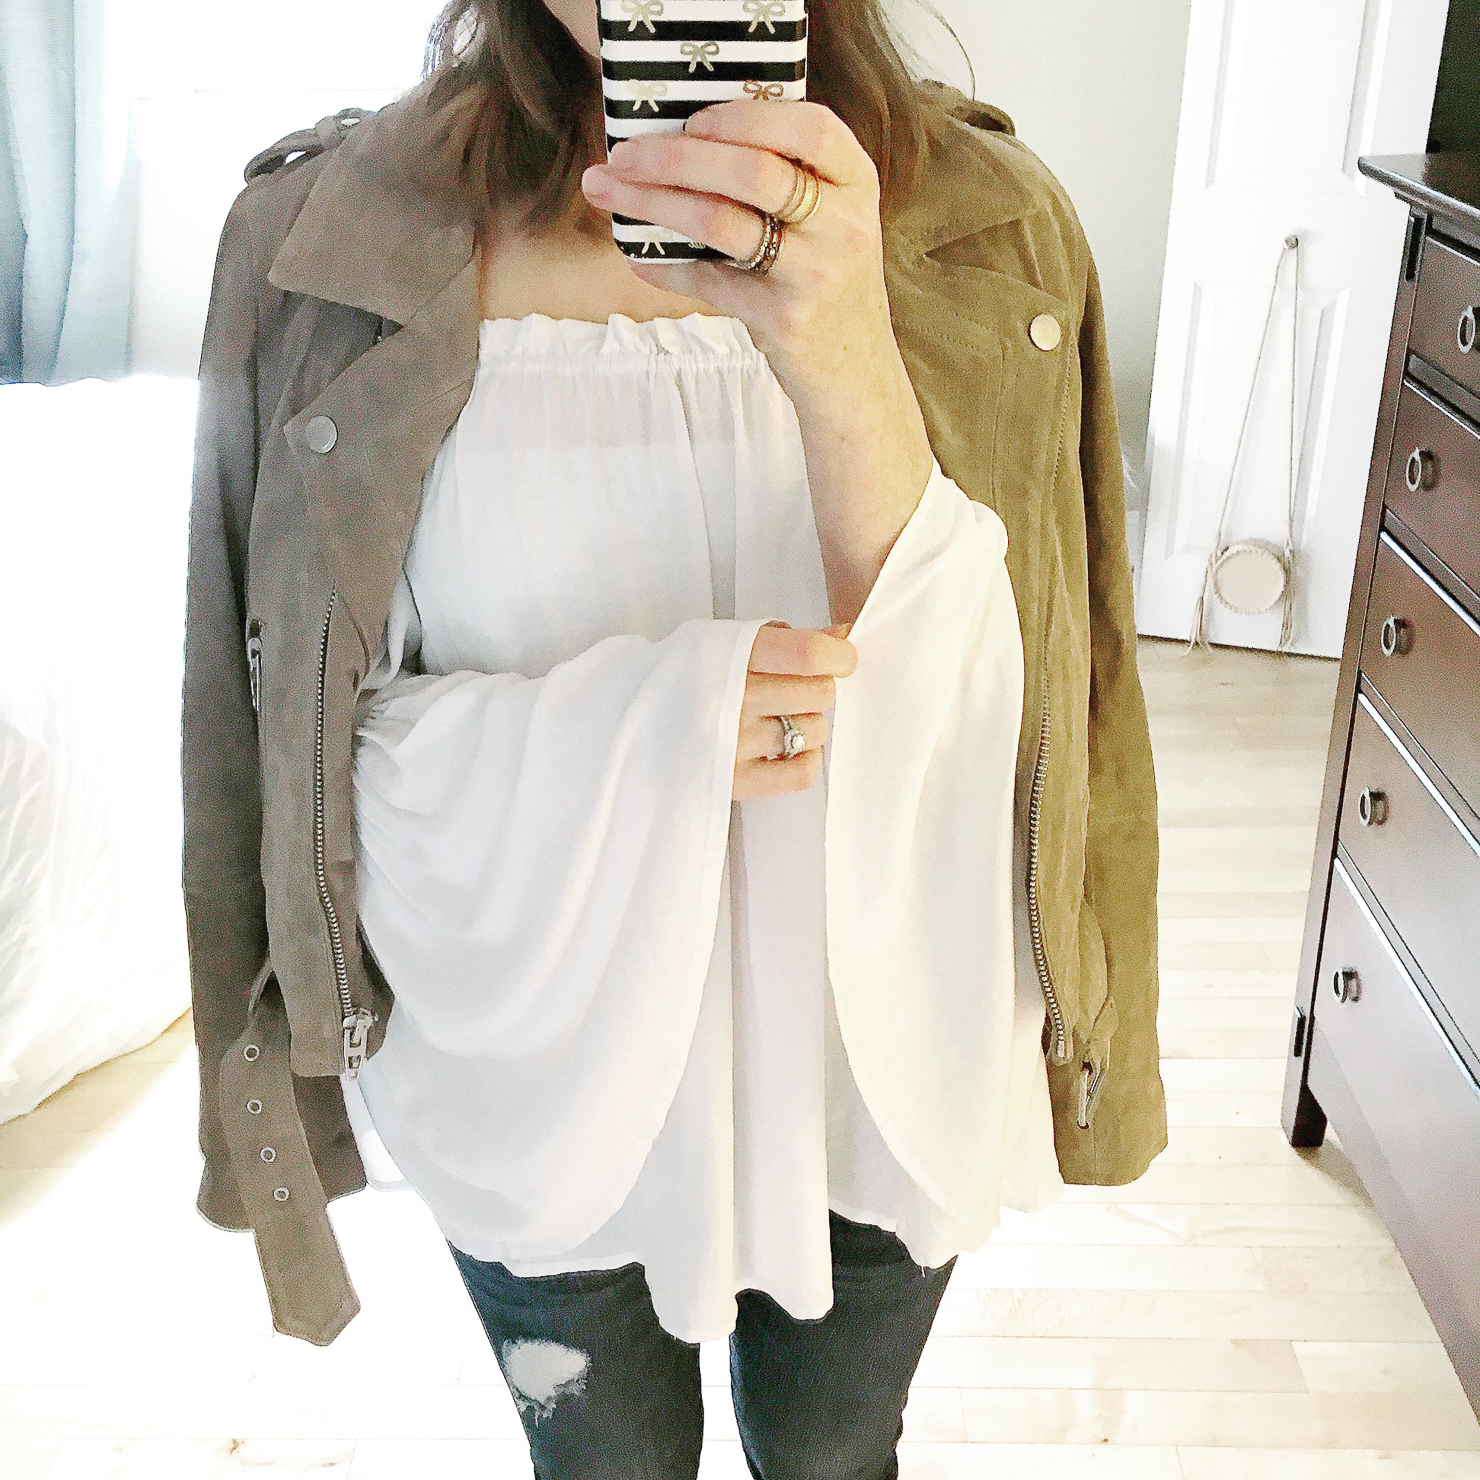 instagram-shein-bell-sleeve-off-the-shoulder-blouse-blanknyc-suede-jacket